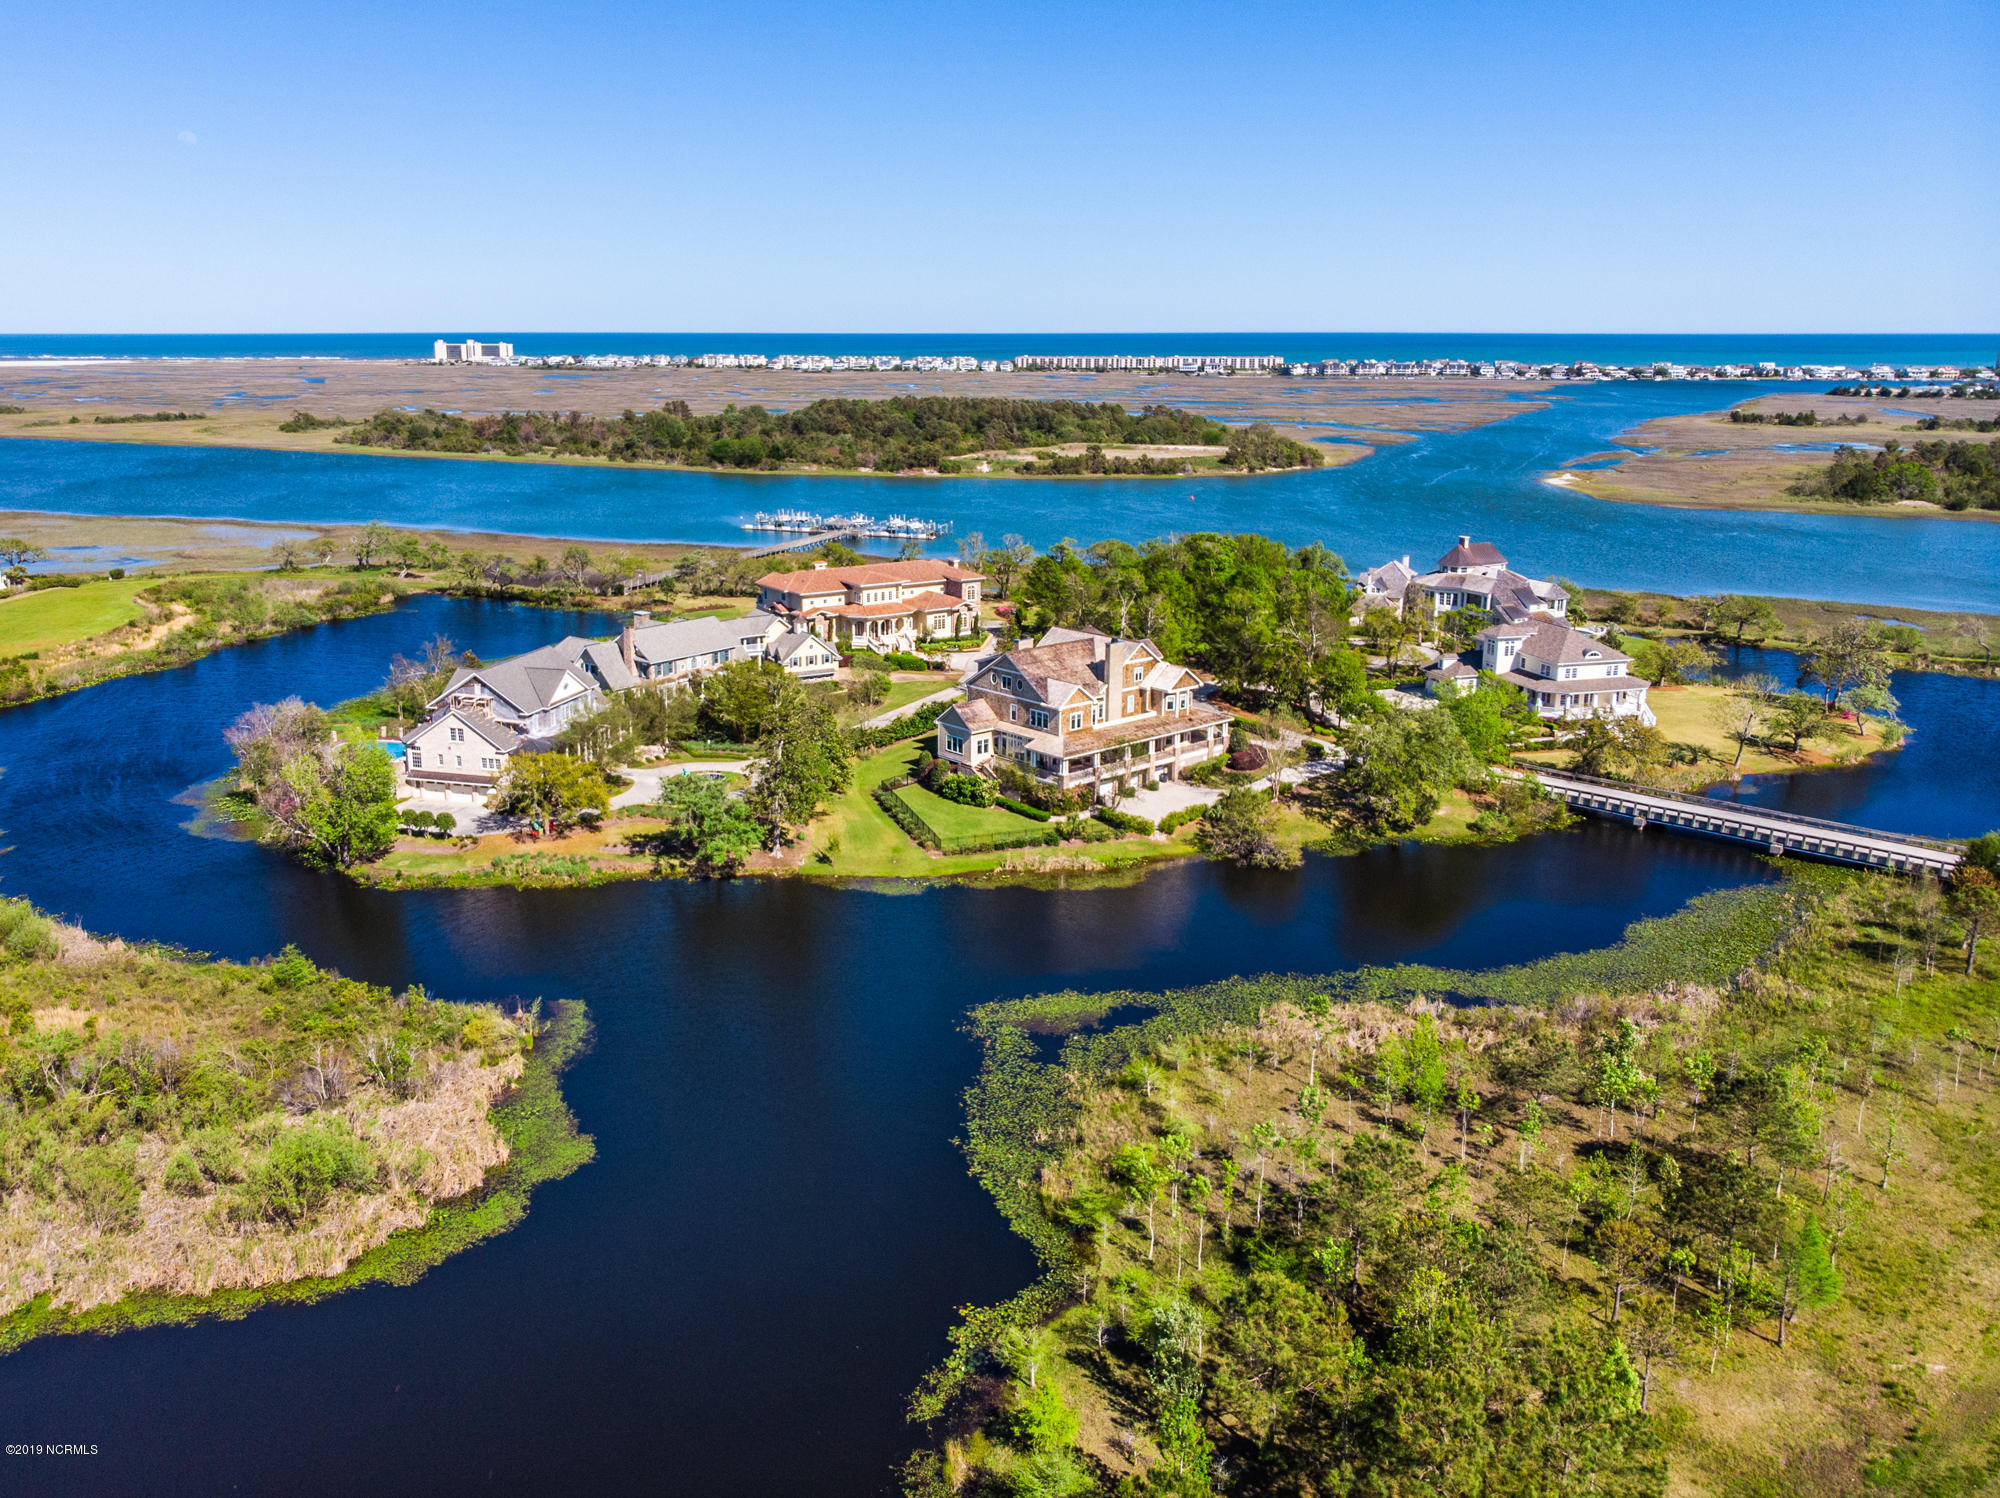 1130 Pembroke Jones Drive, Wilmington, North Carolina 28405, 5 Bedrooms Bedrooms, 20 Rooms Rooms,7 BathroomsBathrooms,Single family residence,For sale,Pembroke Jones,100162684